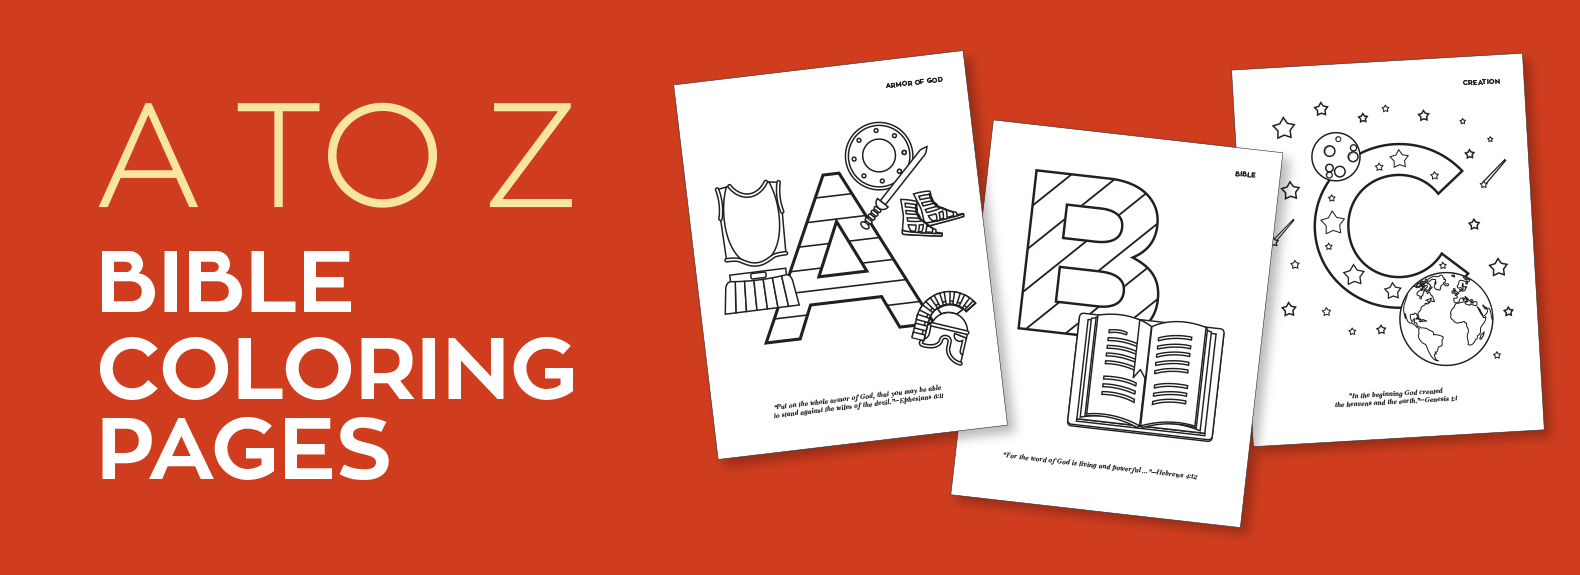 A to Z Bible Coloring Pages - Life, Hope & Truth